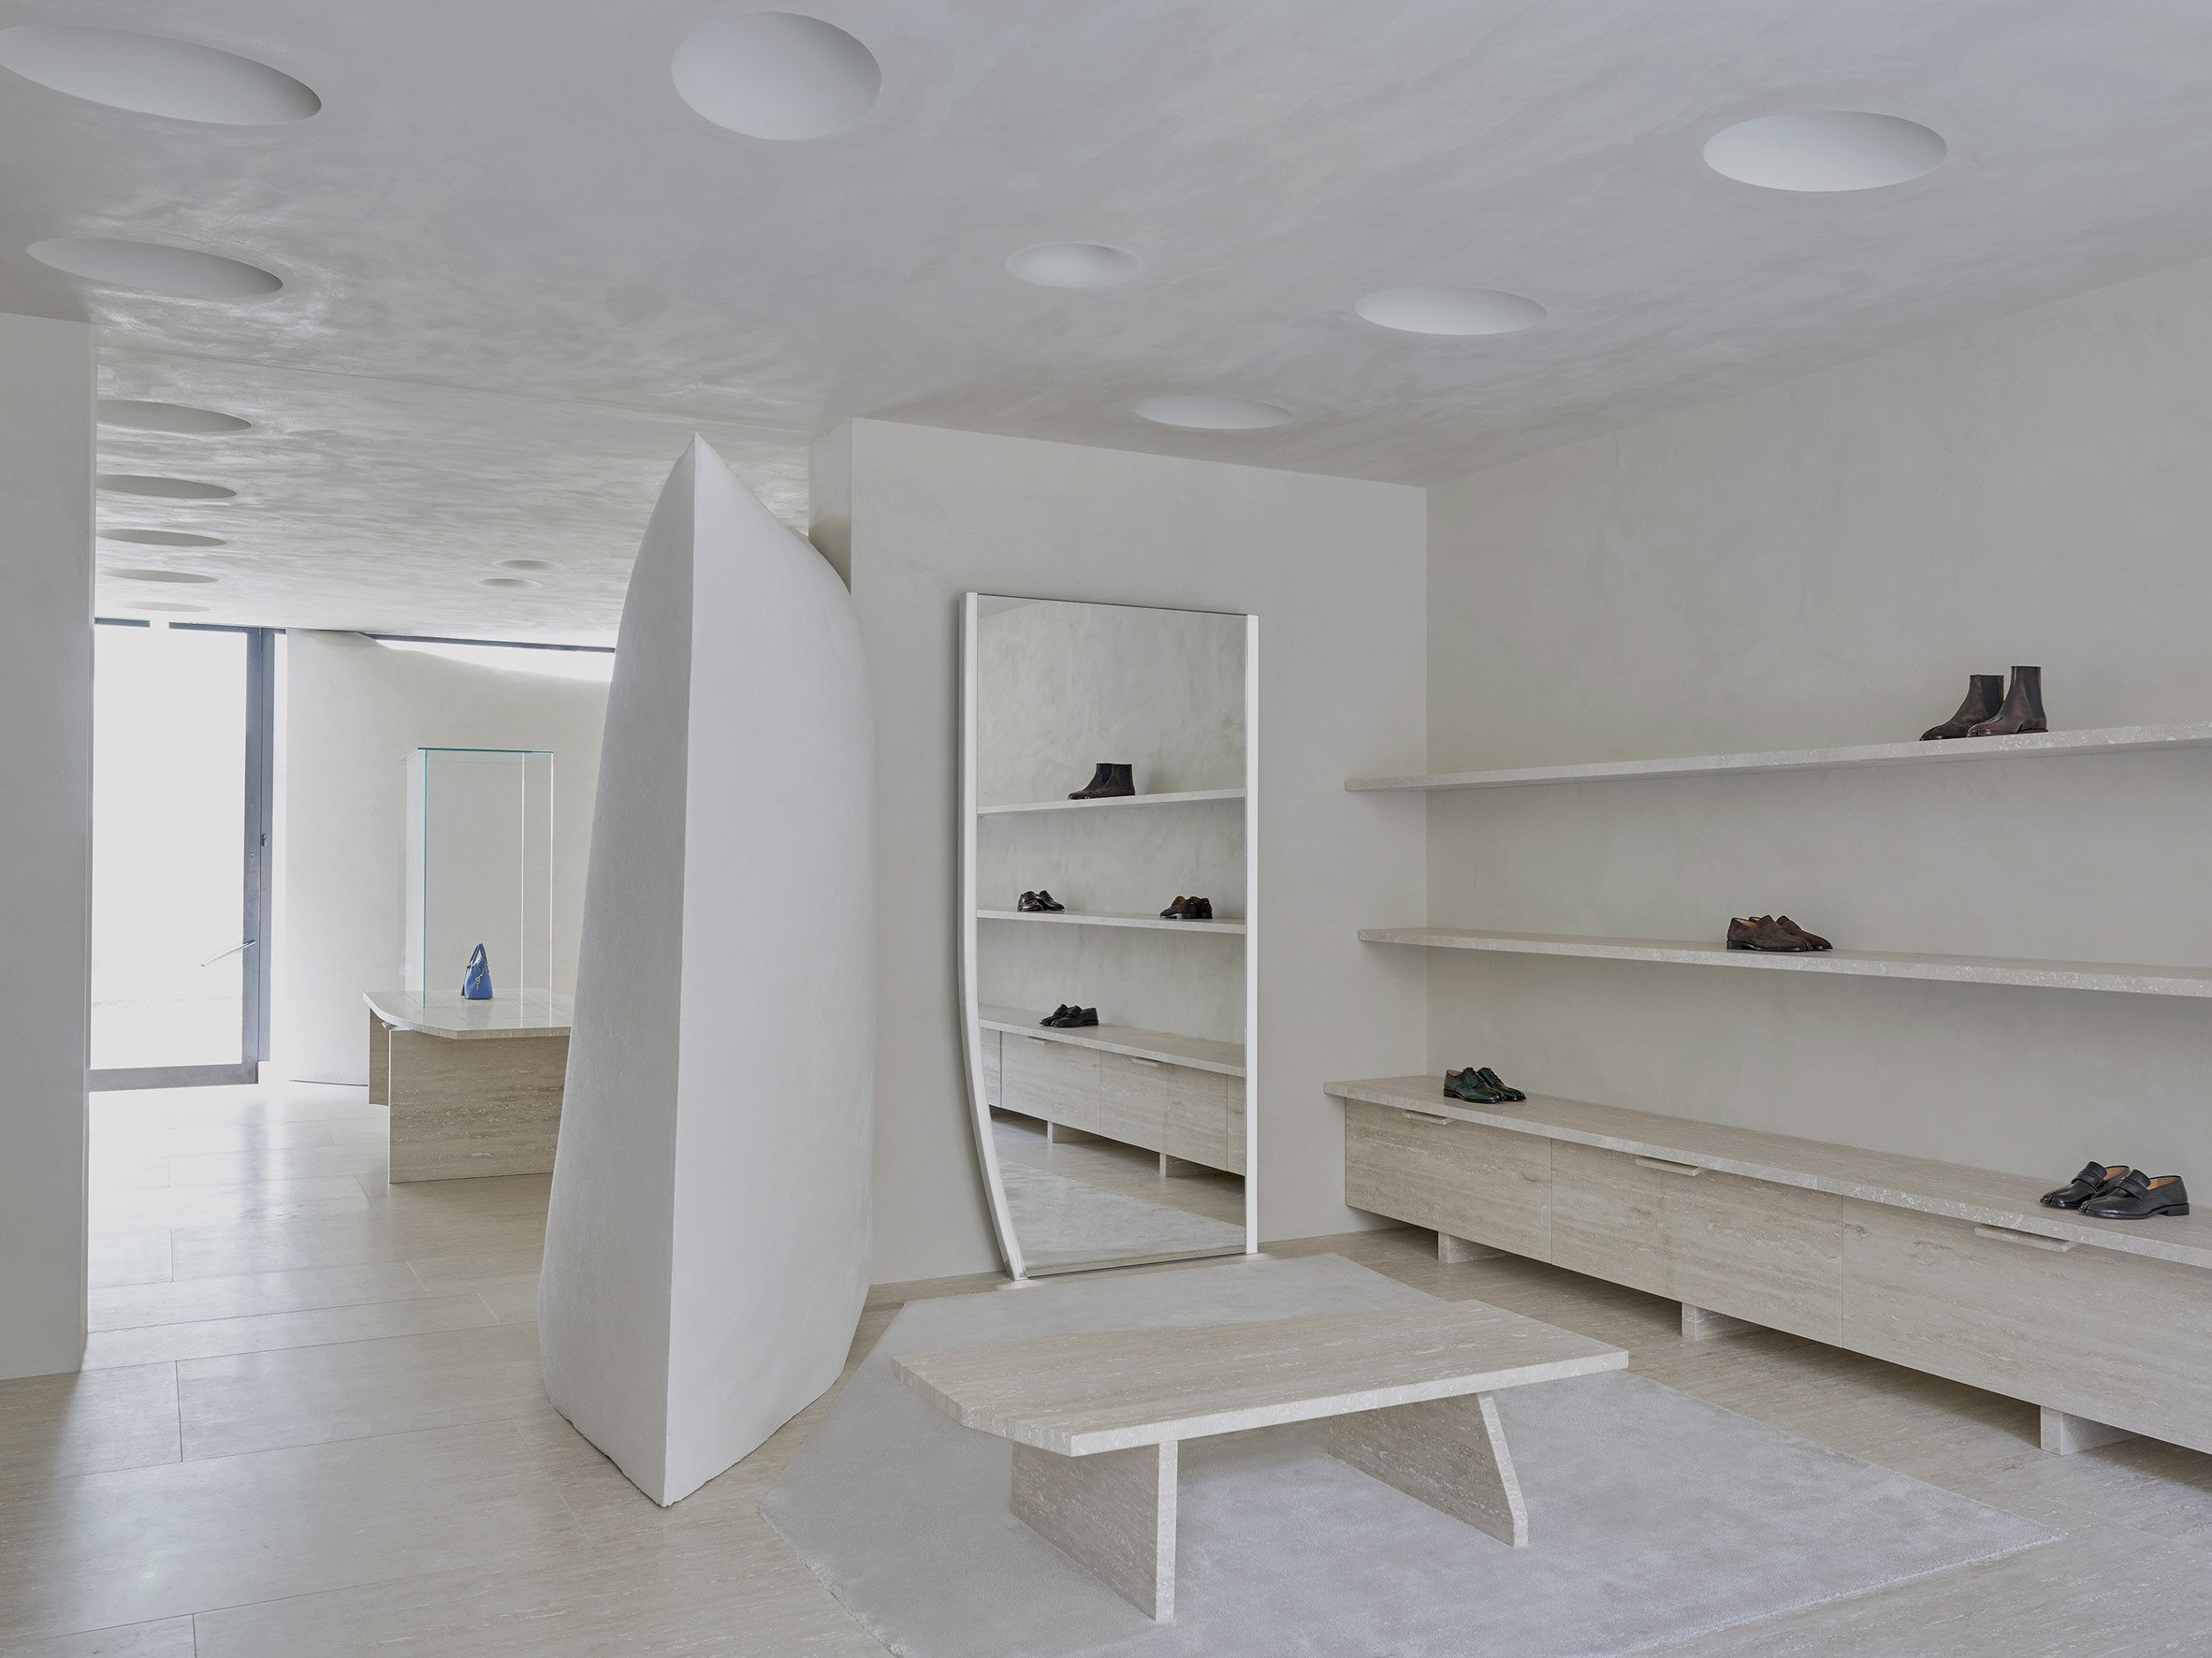 Travertine floors and furniture in Maison Margiela's London Bruton Street store by Studio Anne Holtrop